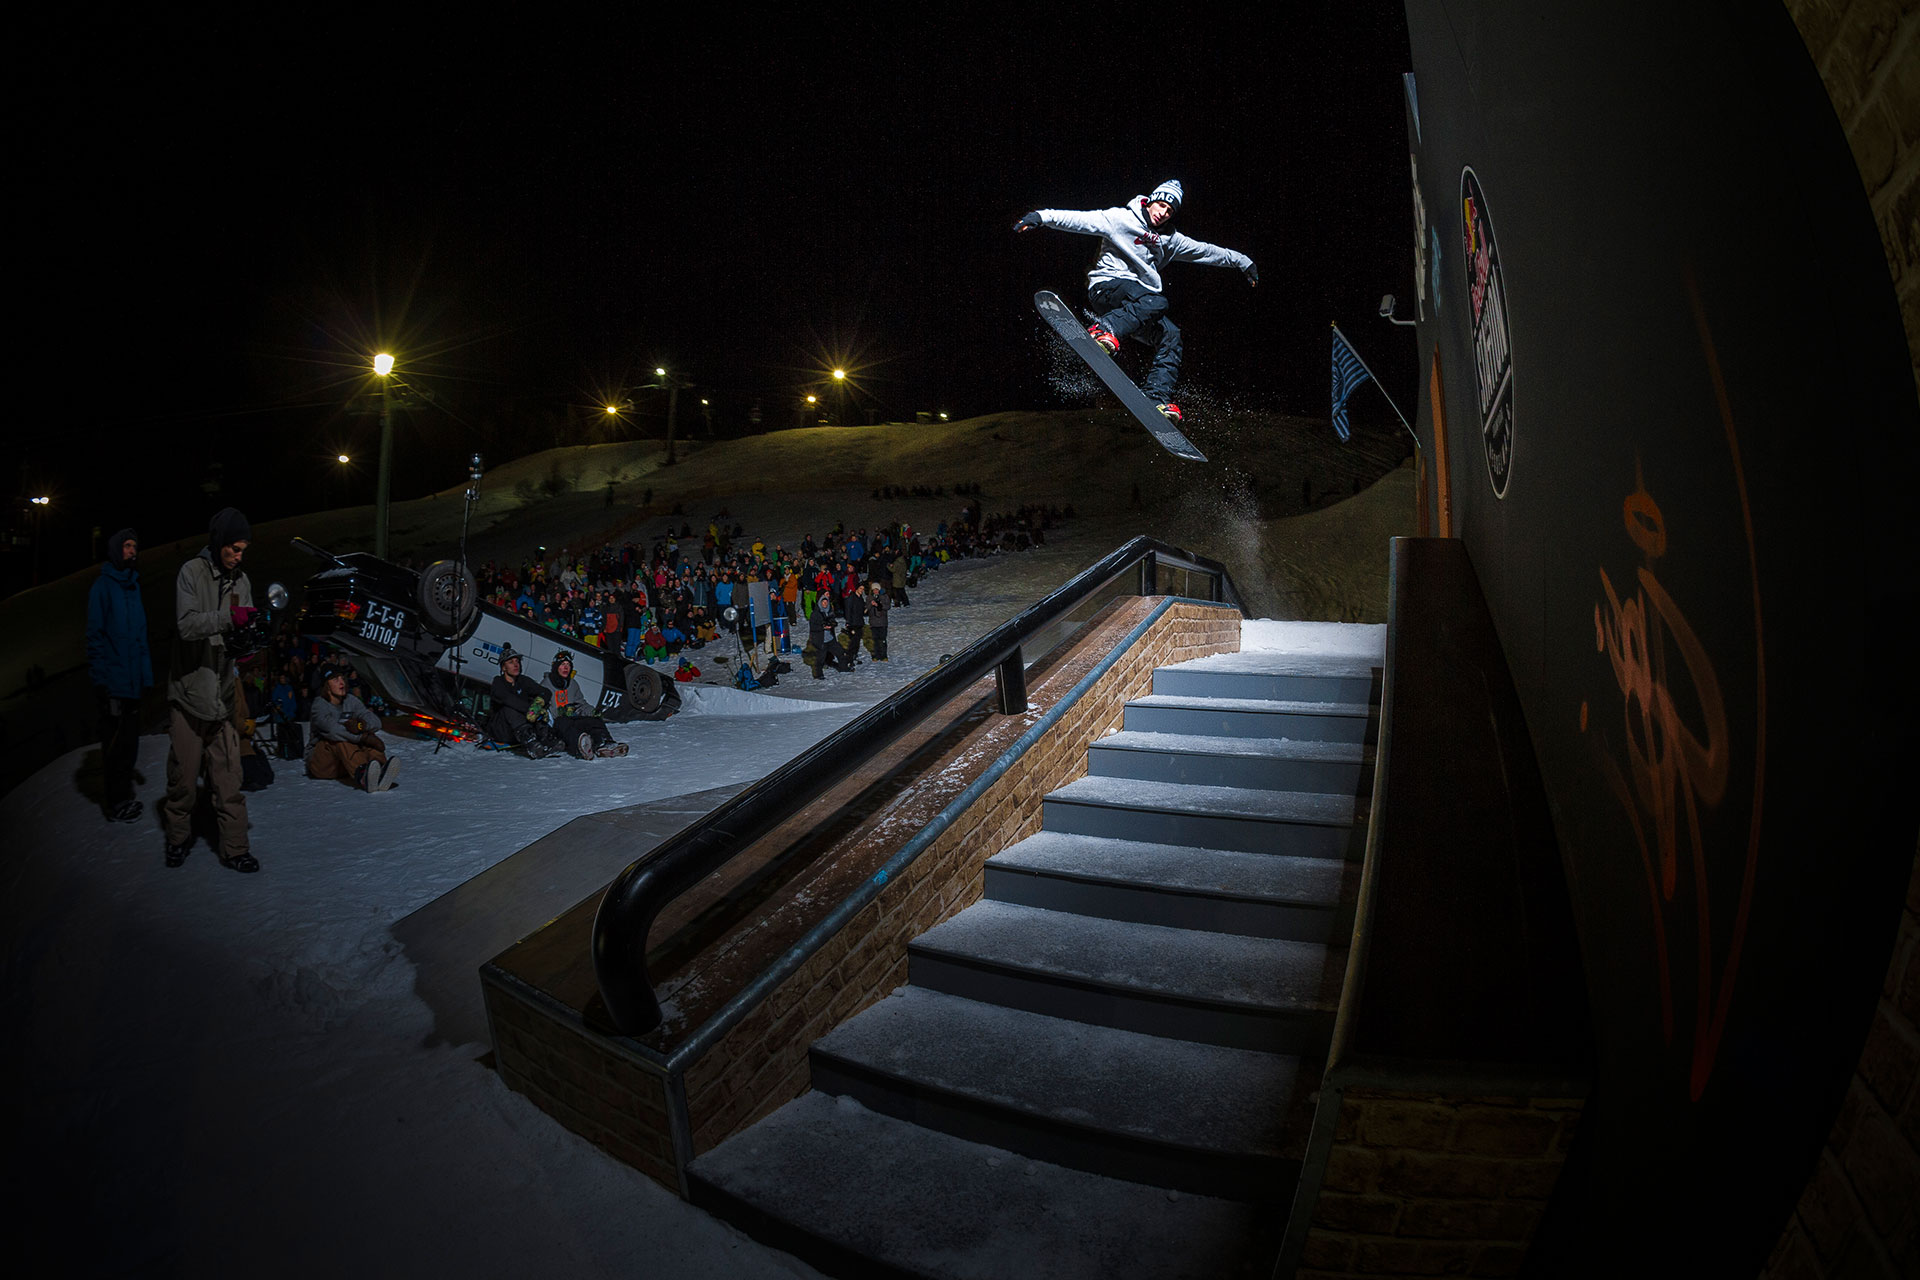 Markus Fischer/Red Bull Content Pool © Red Bull Media House